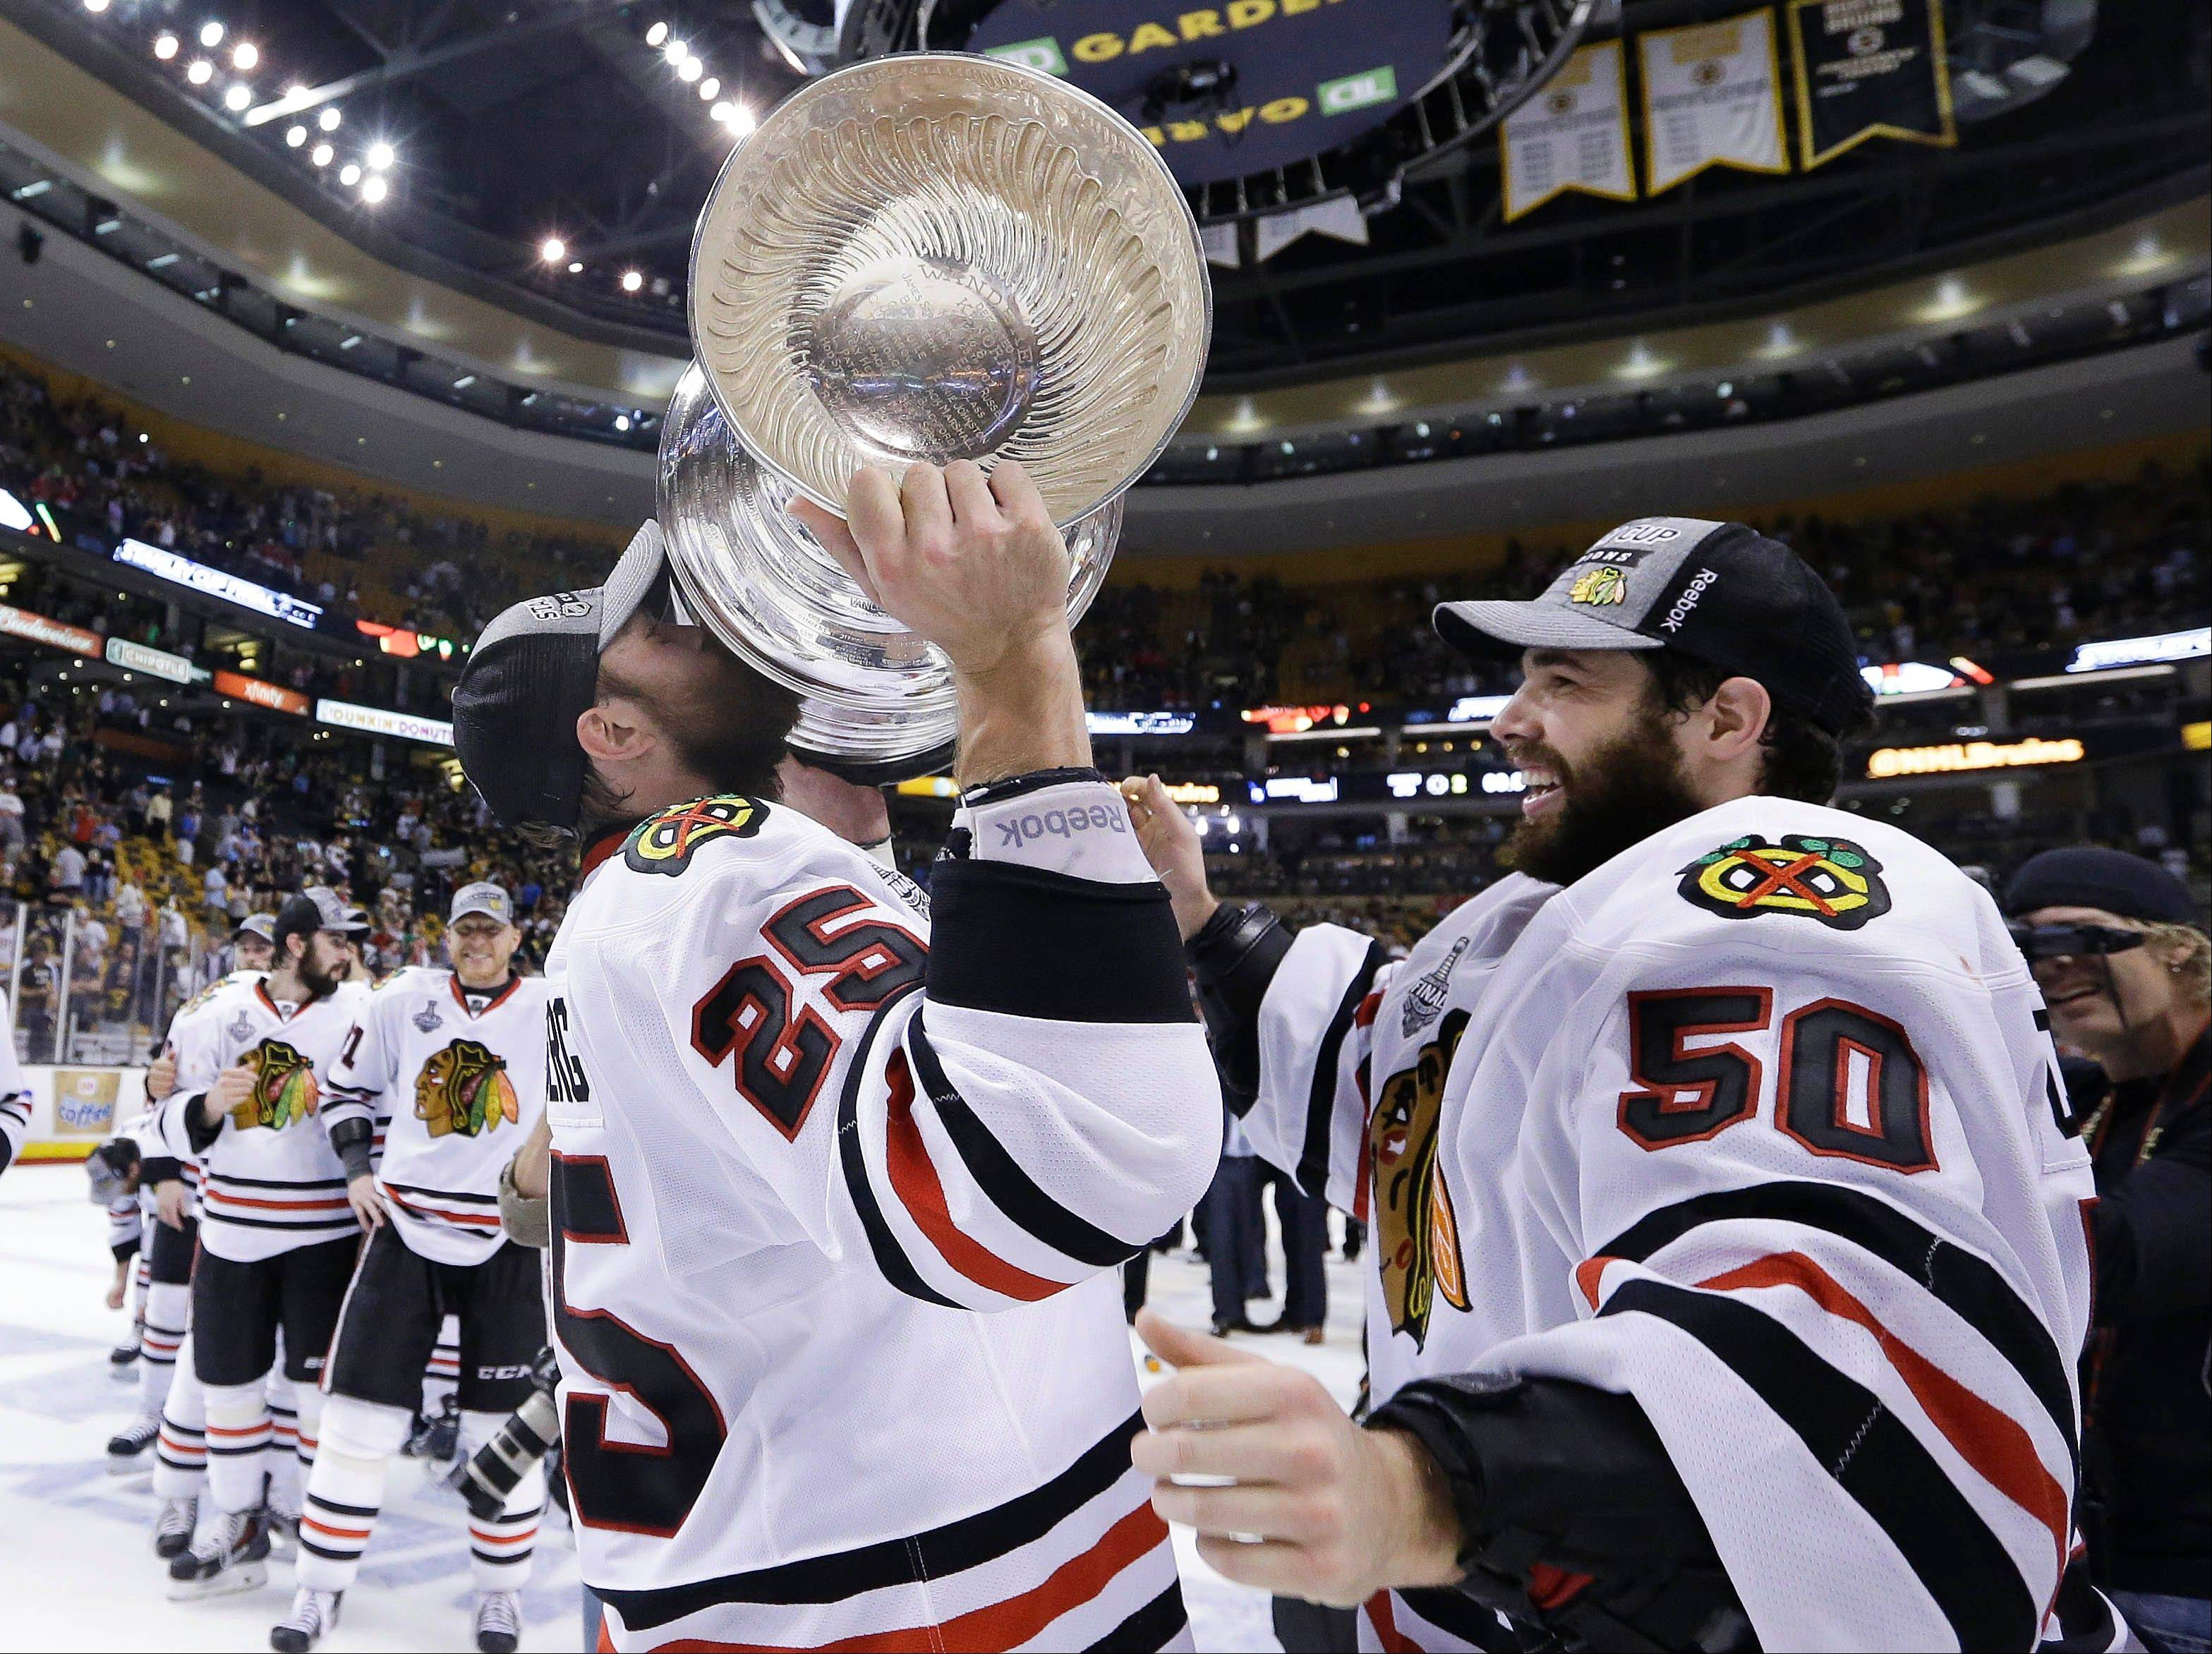 Blackhawks left wing Viktor Stalberg hoists the Stanley Cup Monday alongside goalie Corey Crawford after the Blackhawks beat the Boston Bruins in Game 6 of the Stanley Cup Finals in Boston.